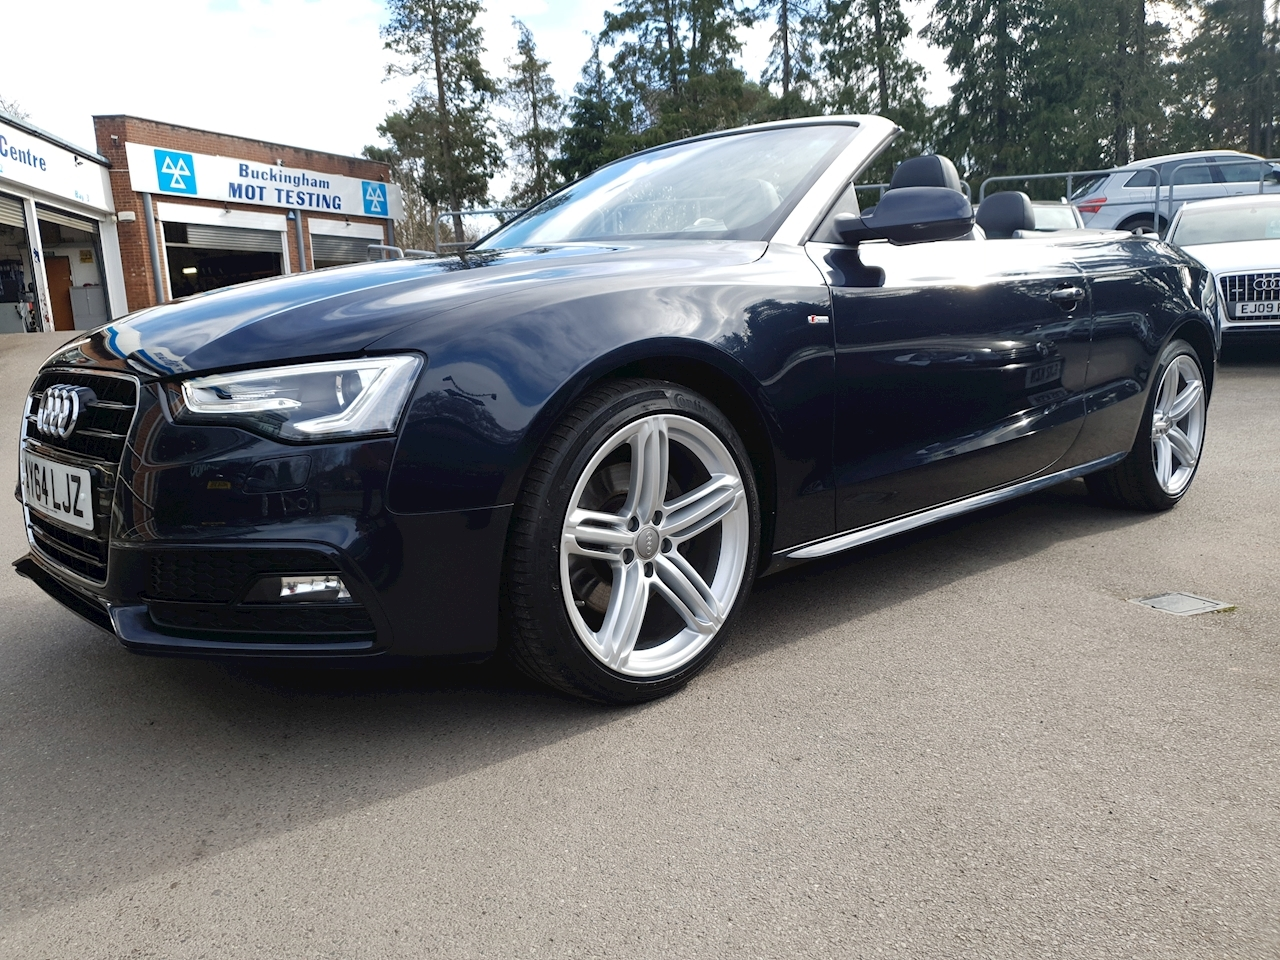 Audi 2.0 TFSI S line Special Edition Cabriolet 2dr Petrol Manual (148 g/km, 222 bhp)